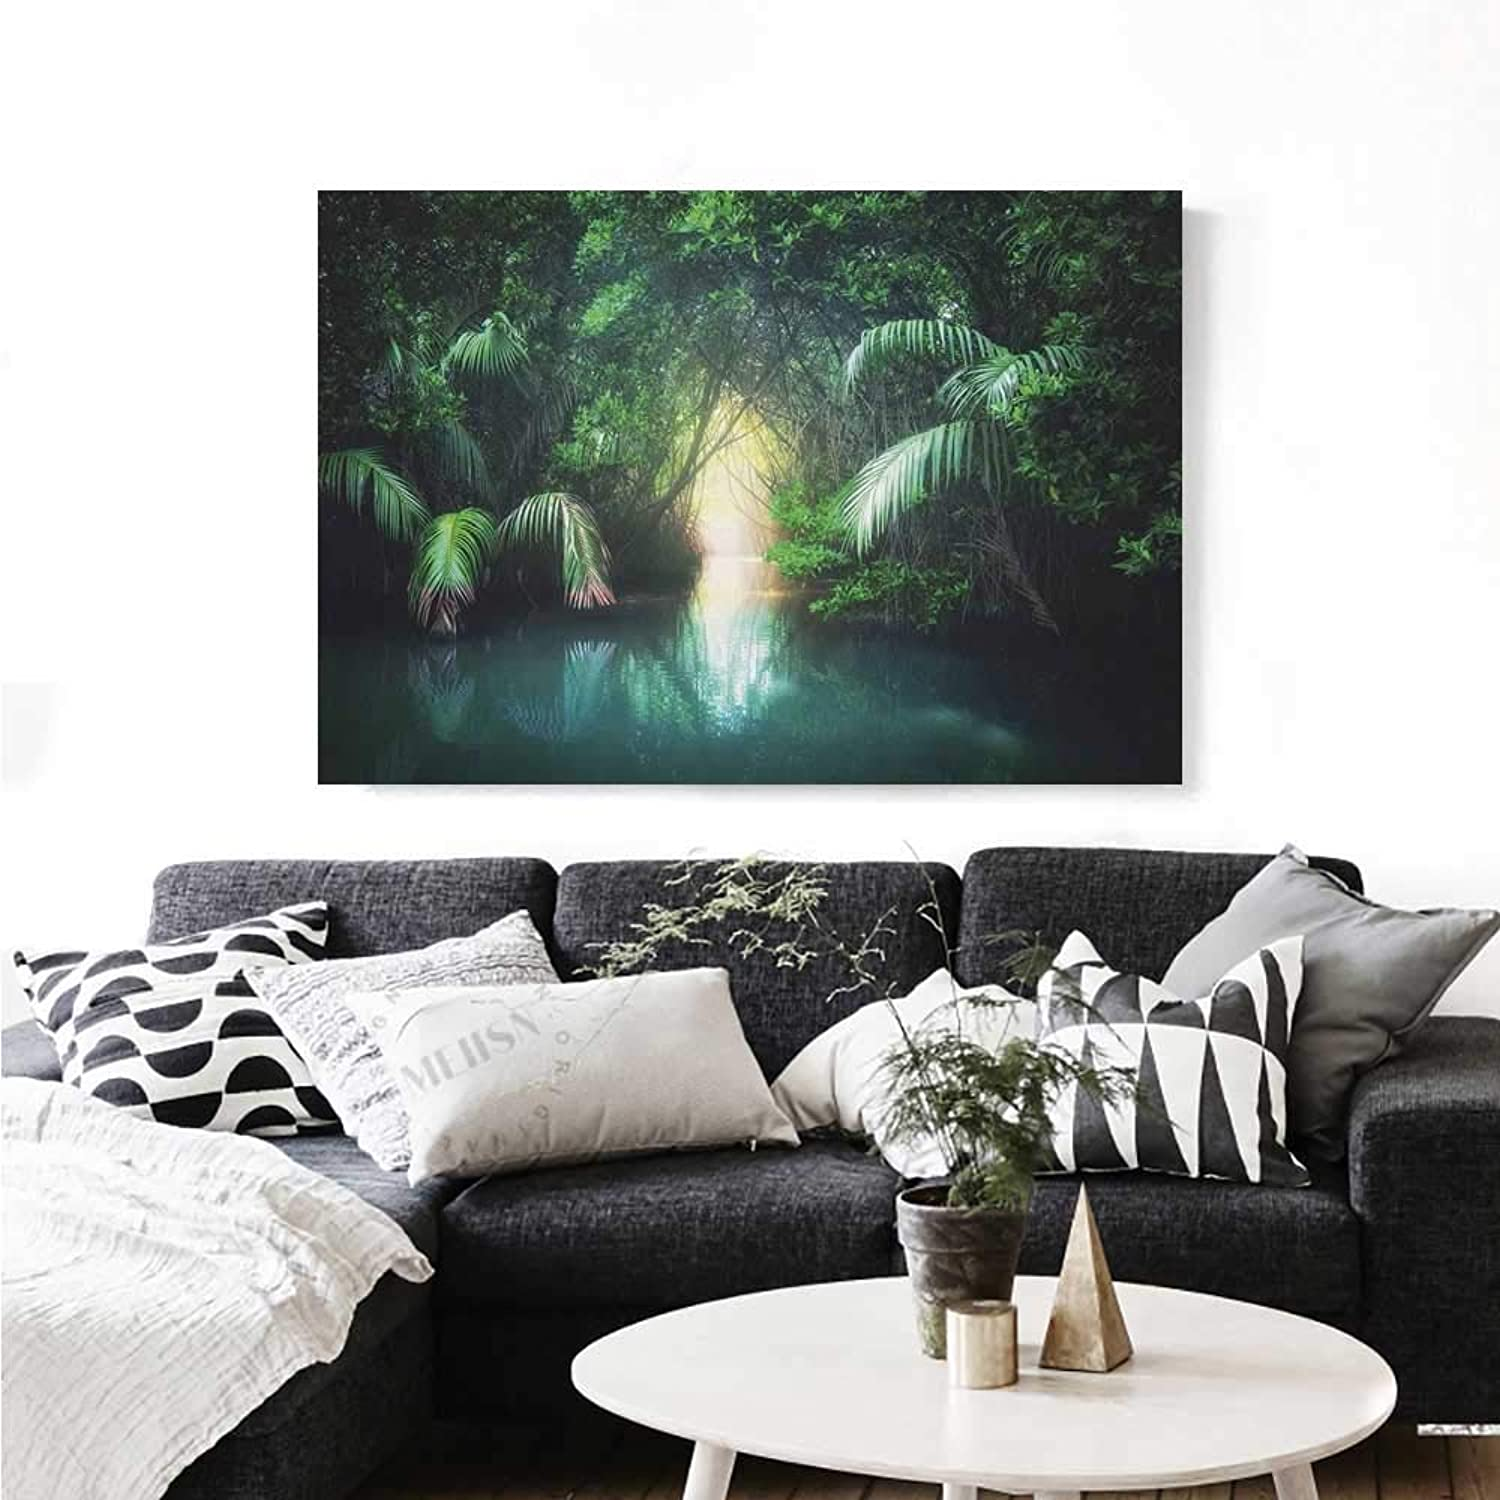 Warm Family Jungle Canvas Wall Art for Bedroom Home Decorations Tropical Lake Mangrove Rainforest Pathway Through Lush Sri Lanka Travel Destination Wall Stickers 36 x32  Green Teal